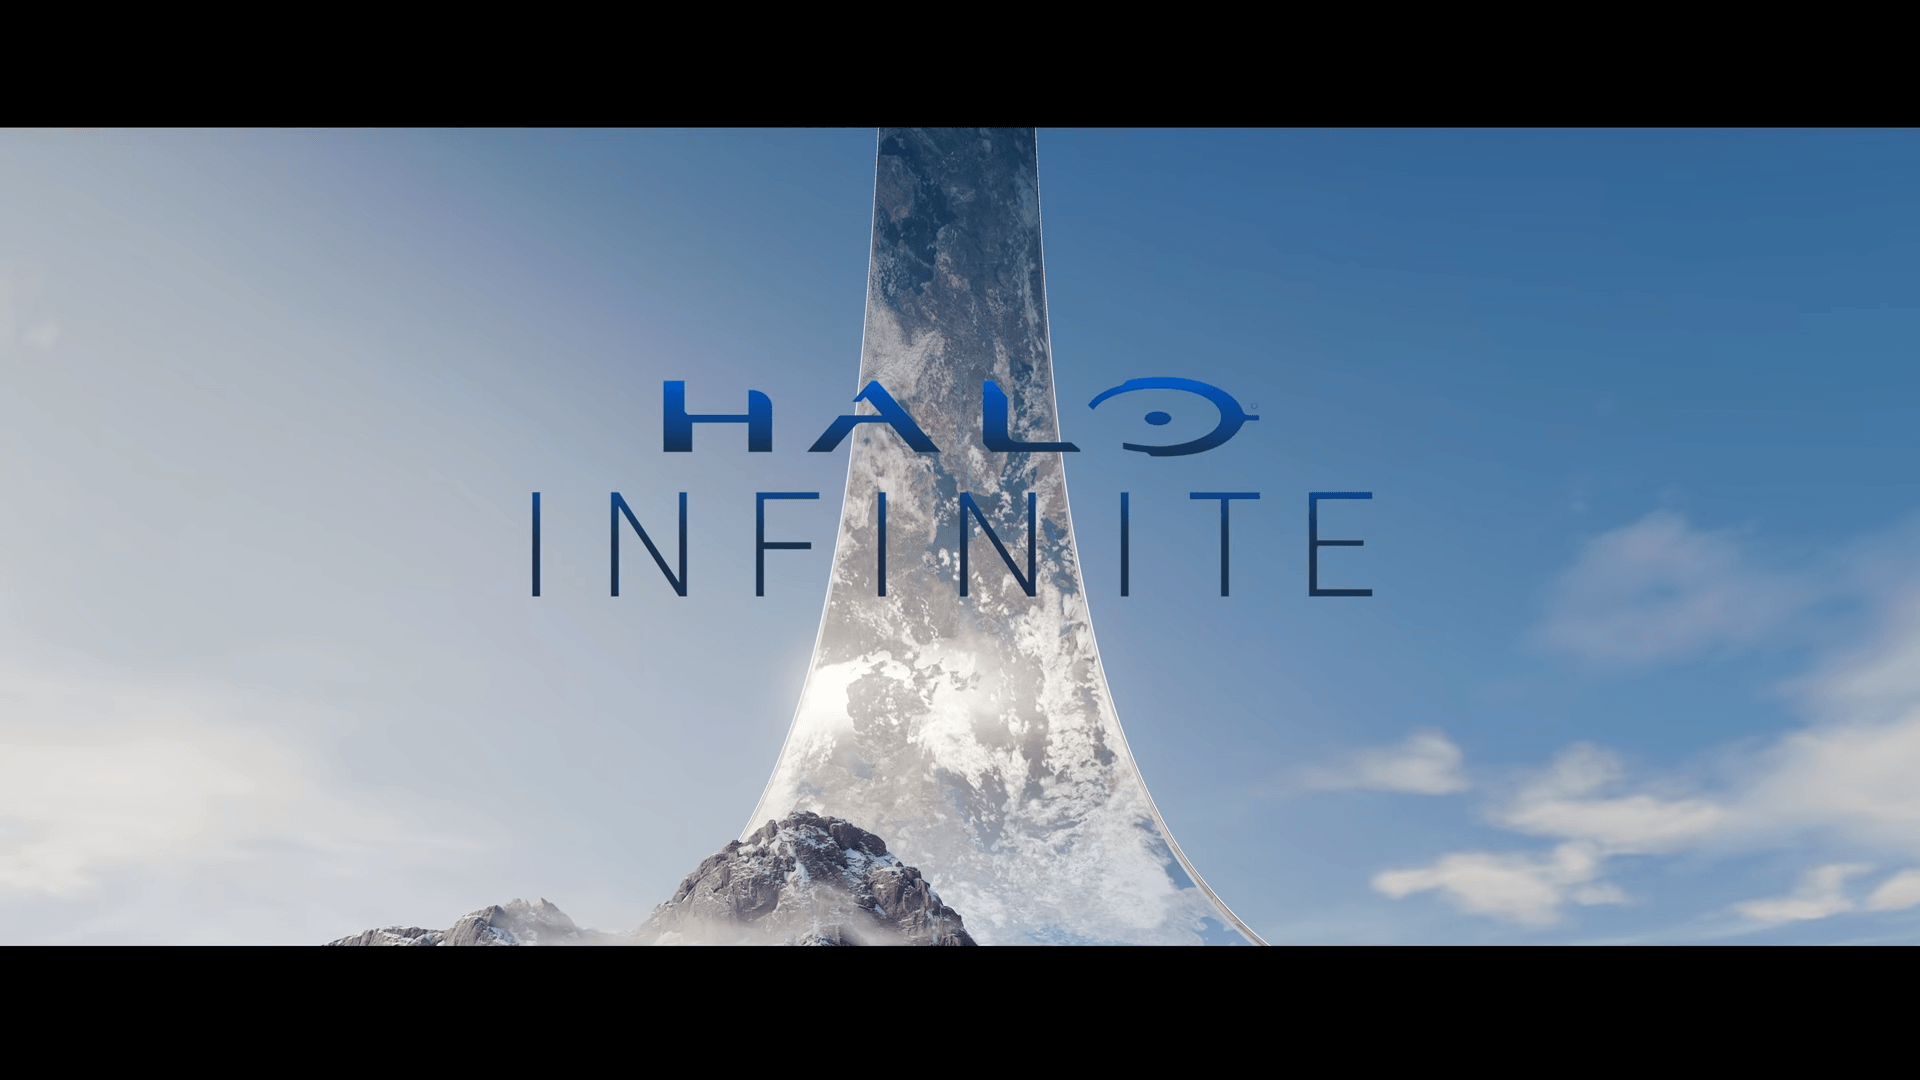 Halo Infinite Wallpapers Top Free Halo Infinite Backgrounds